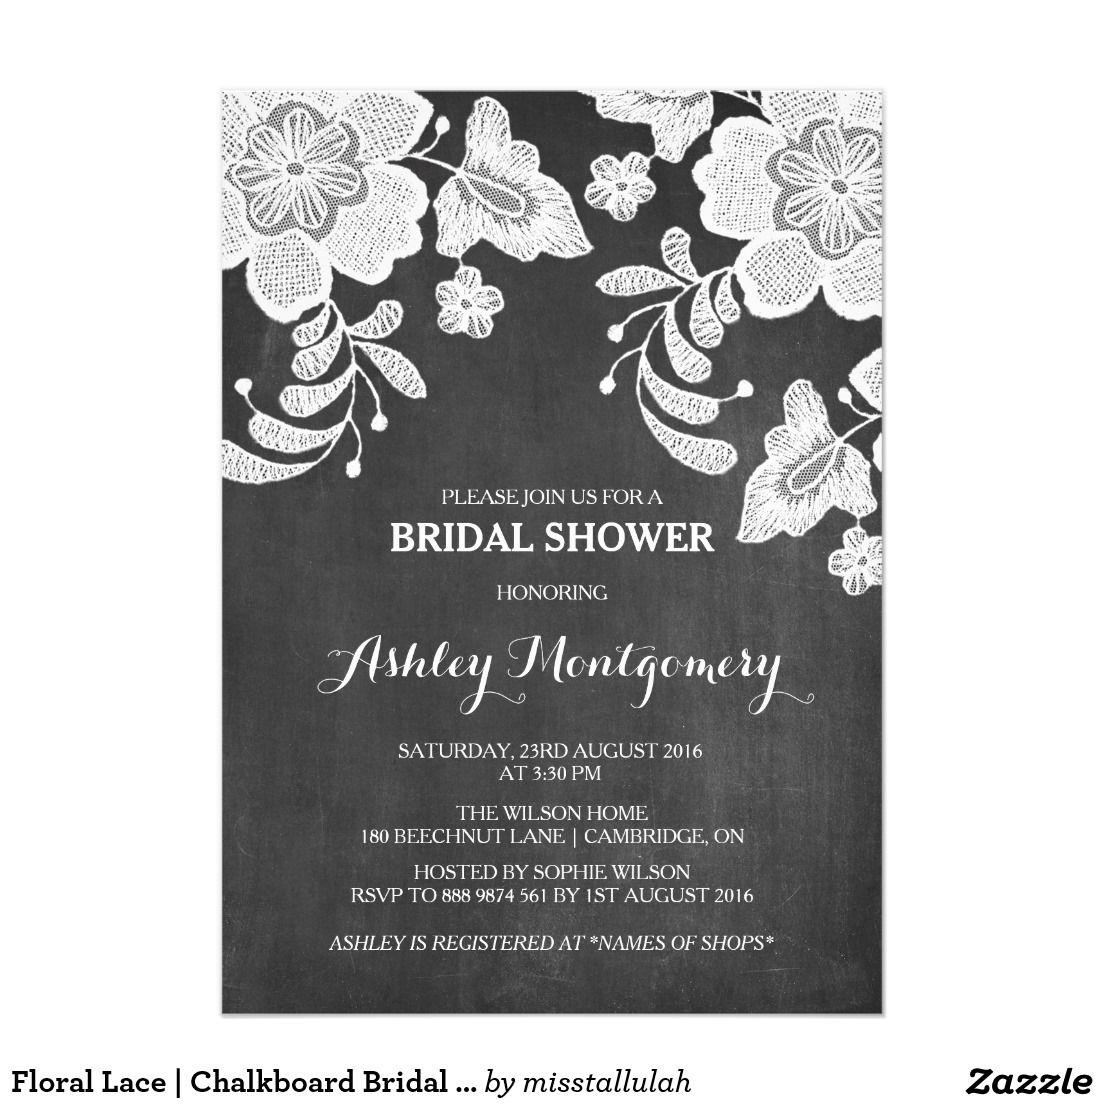 Floral Lace | Chalkboard Bridal Shower Invitation. Elegant Chalkboard Bridal Shower Invitation Templates. Classy bridal shower invitations that you can order online. Customized for the new bride to be. Elegant bridal shower invitation that feature a nice chalkboard background, great design and typography. Click image to customize. Feel free to like or repin.